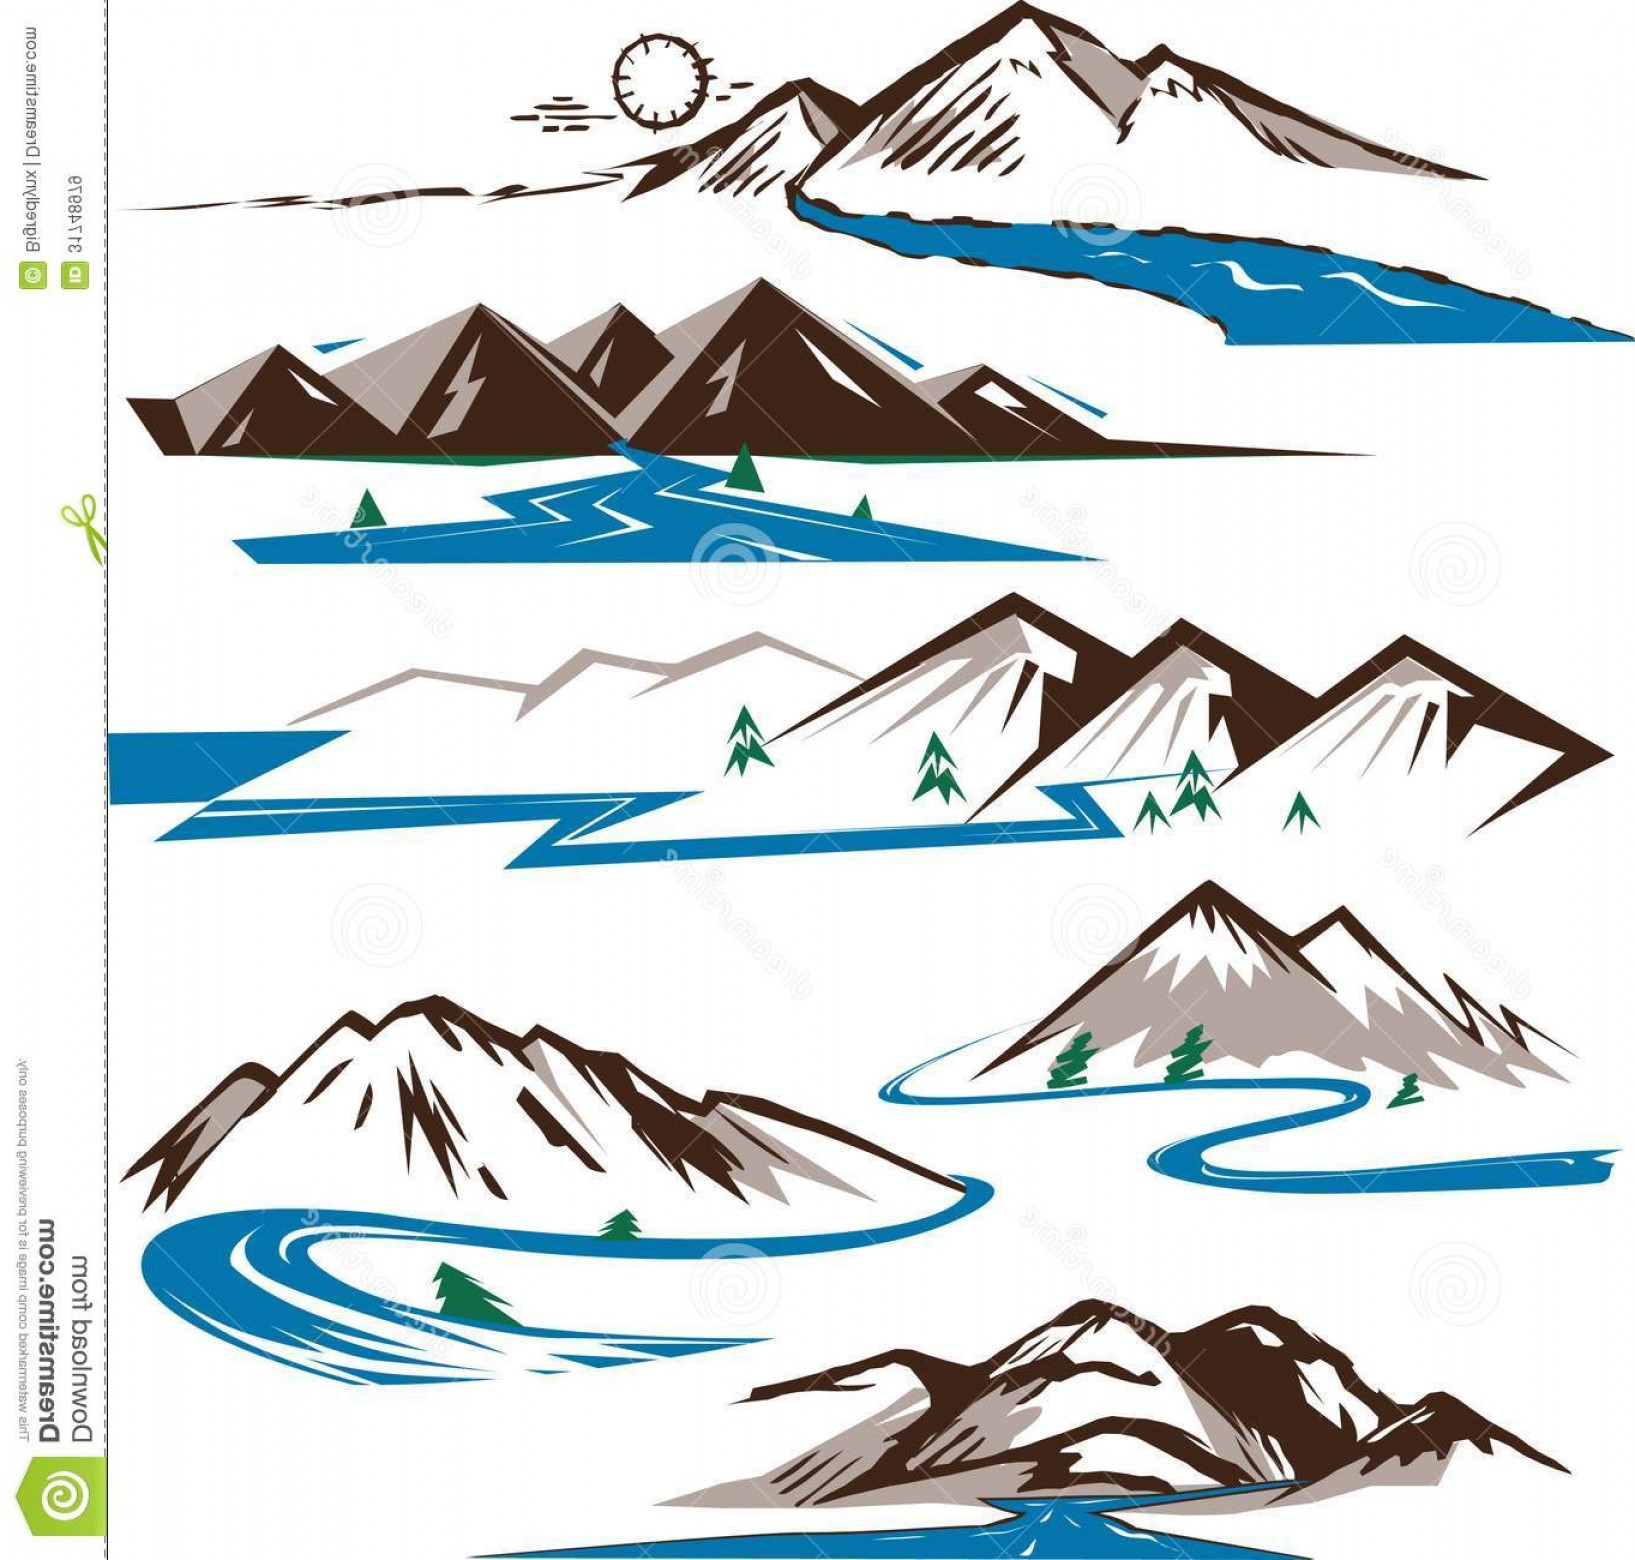 River Silhouette Vector Art: Royalty Free Stock Images Mountains Rivers Clip Art Collection Stylized Image